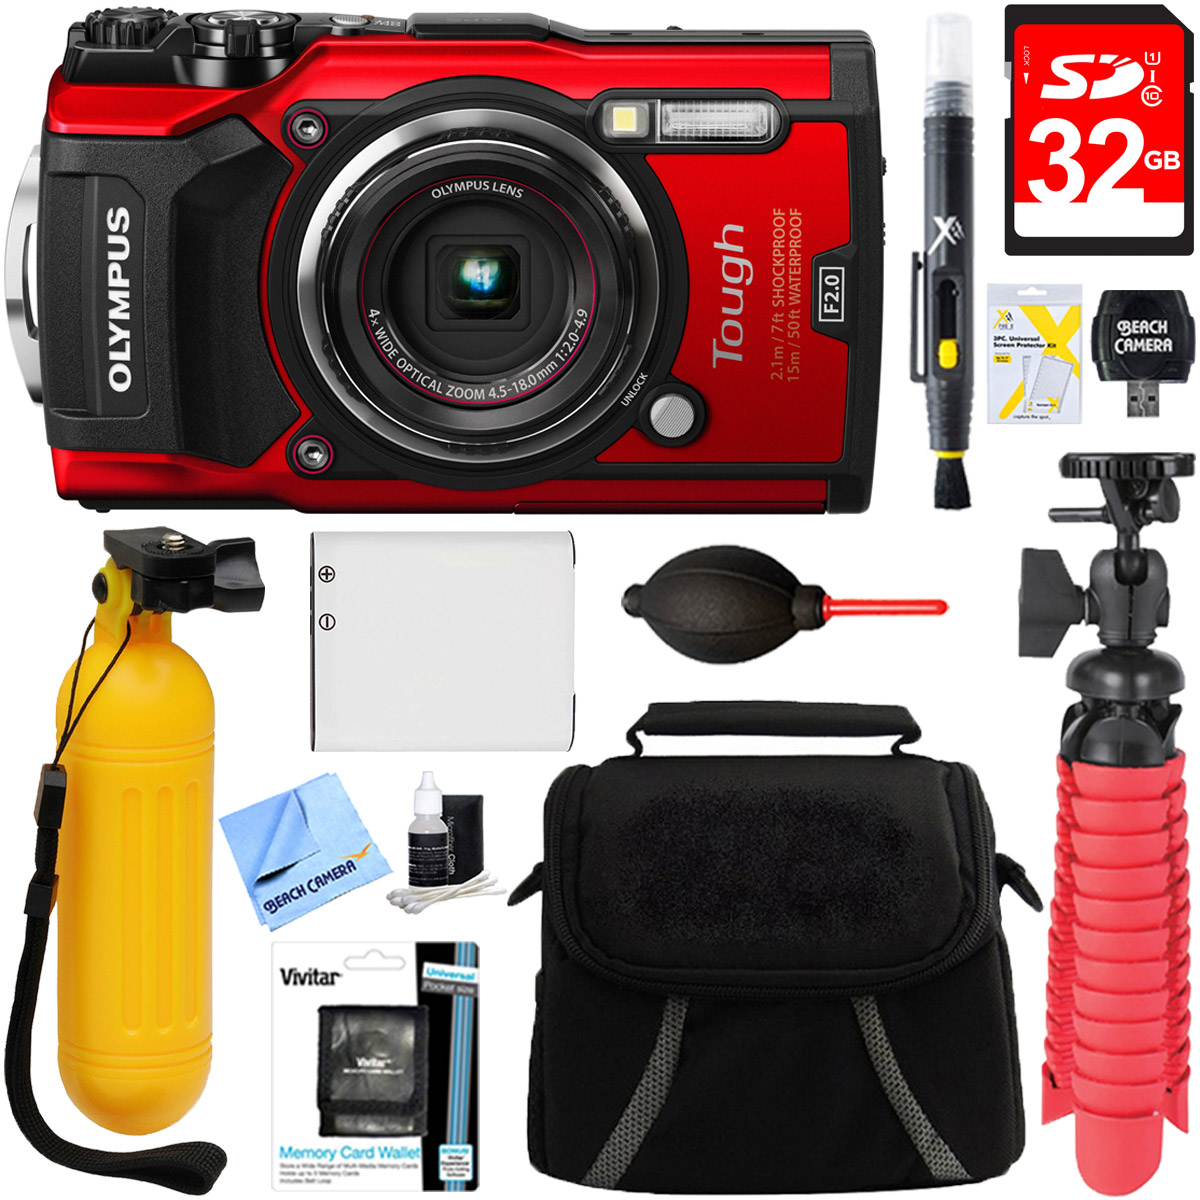 Olympus TG-5 12MP 4x Optical Zoom Digital Camera (Red) + ...